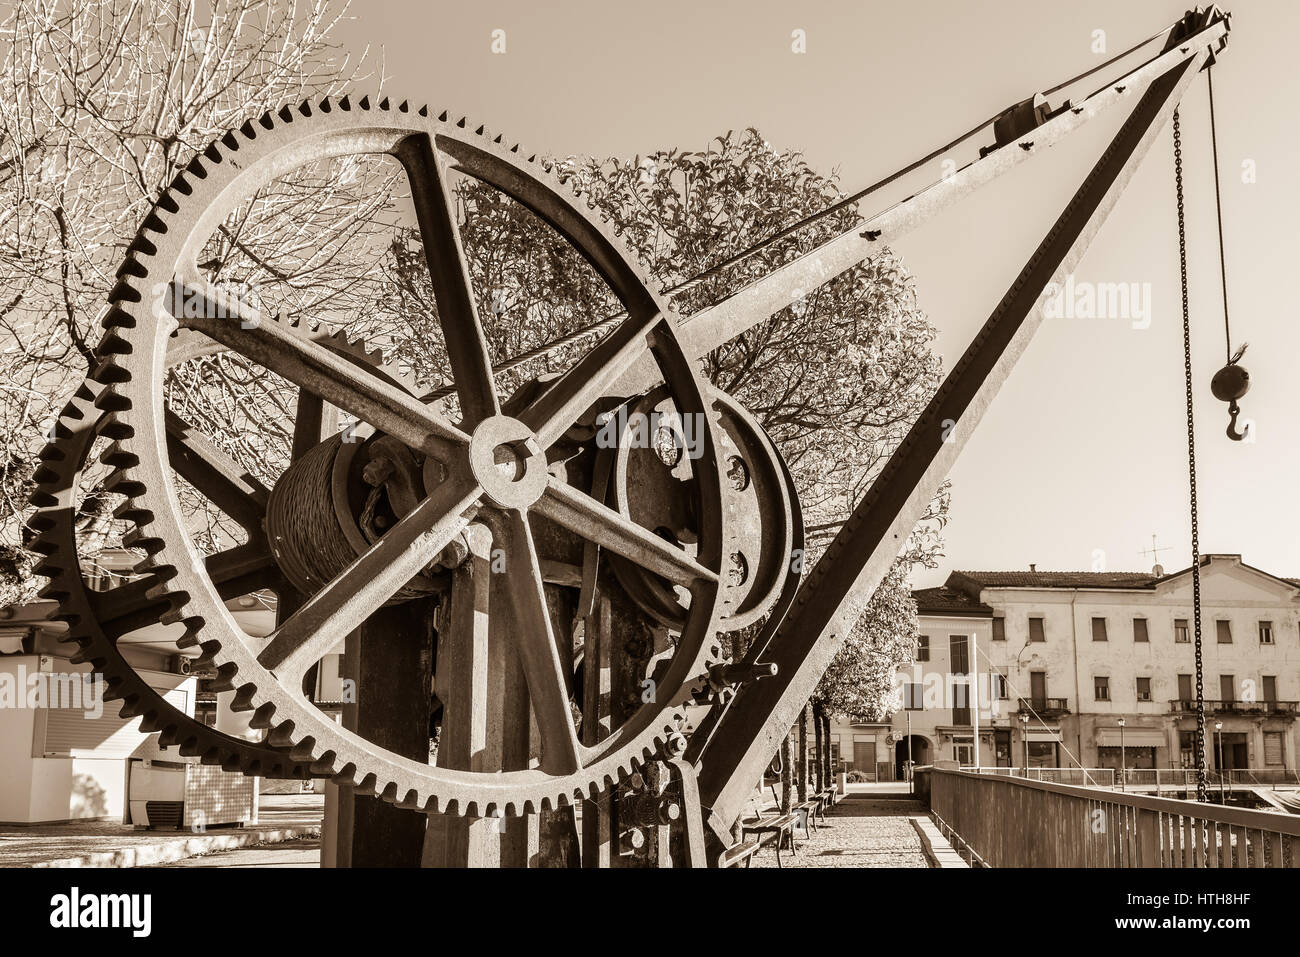 Gear wheels of an old and vintage crane. The crane is located near the small harbor on the lakeside of Luino, Lake - Stock Image